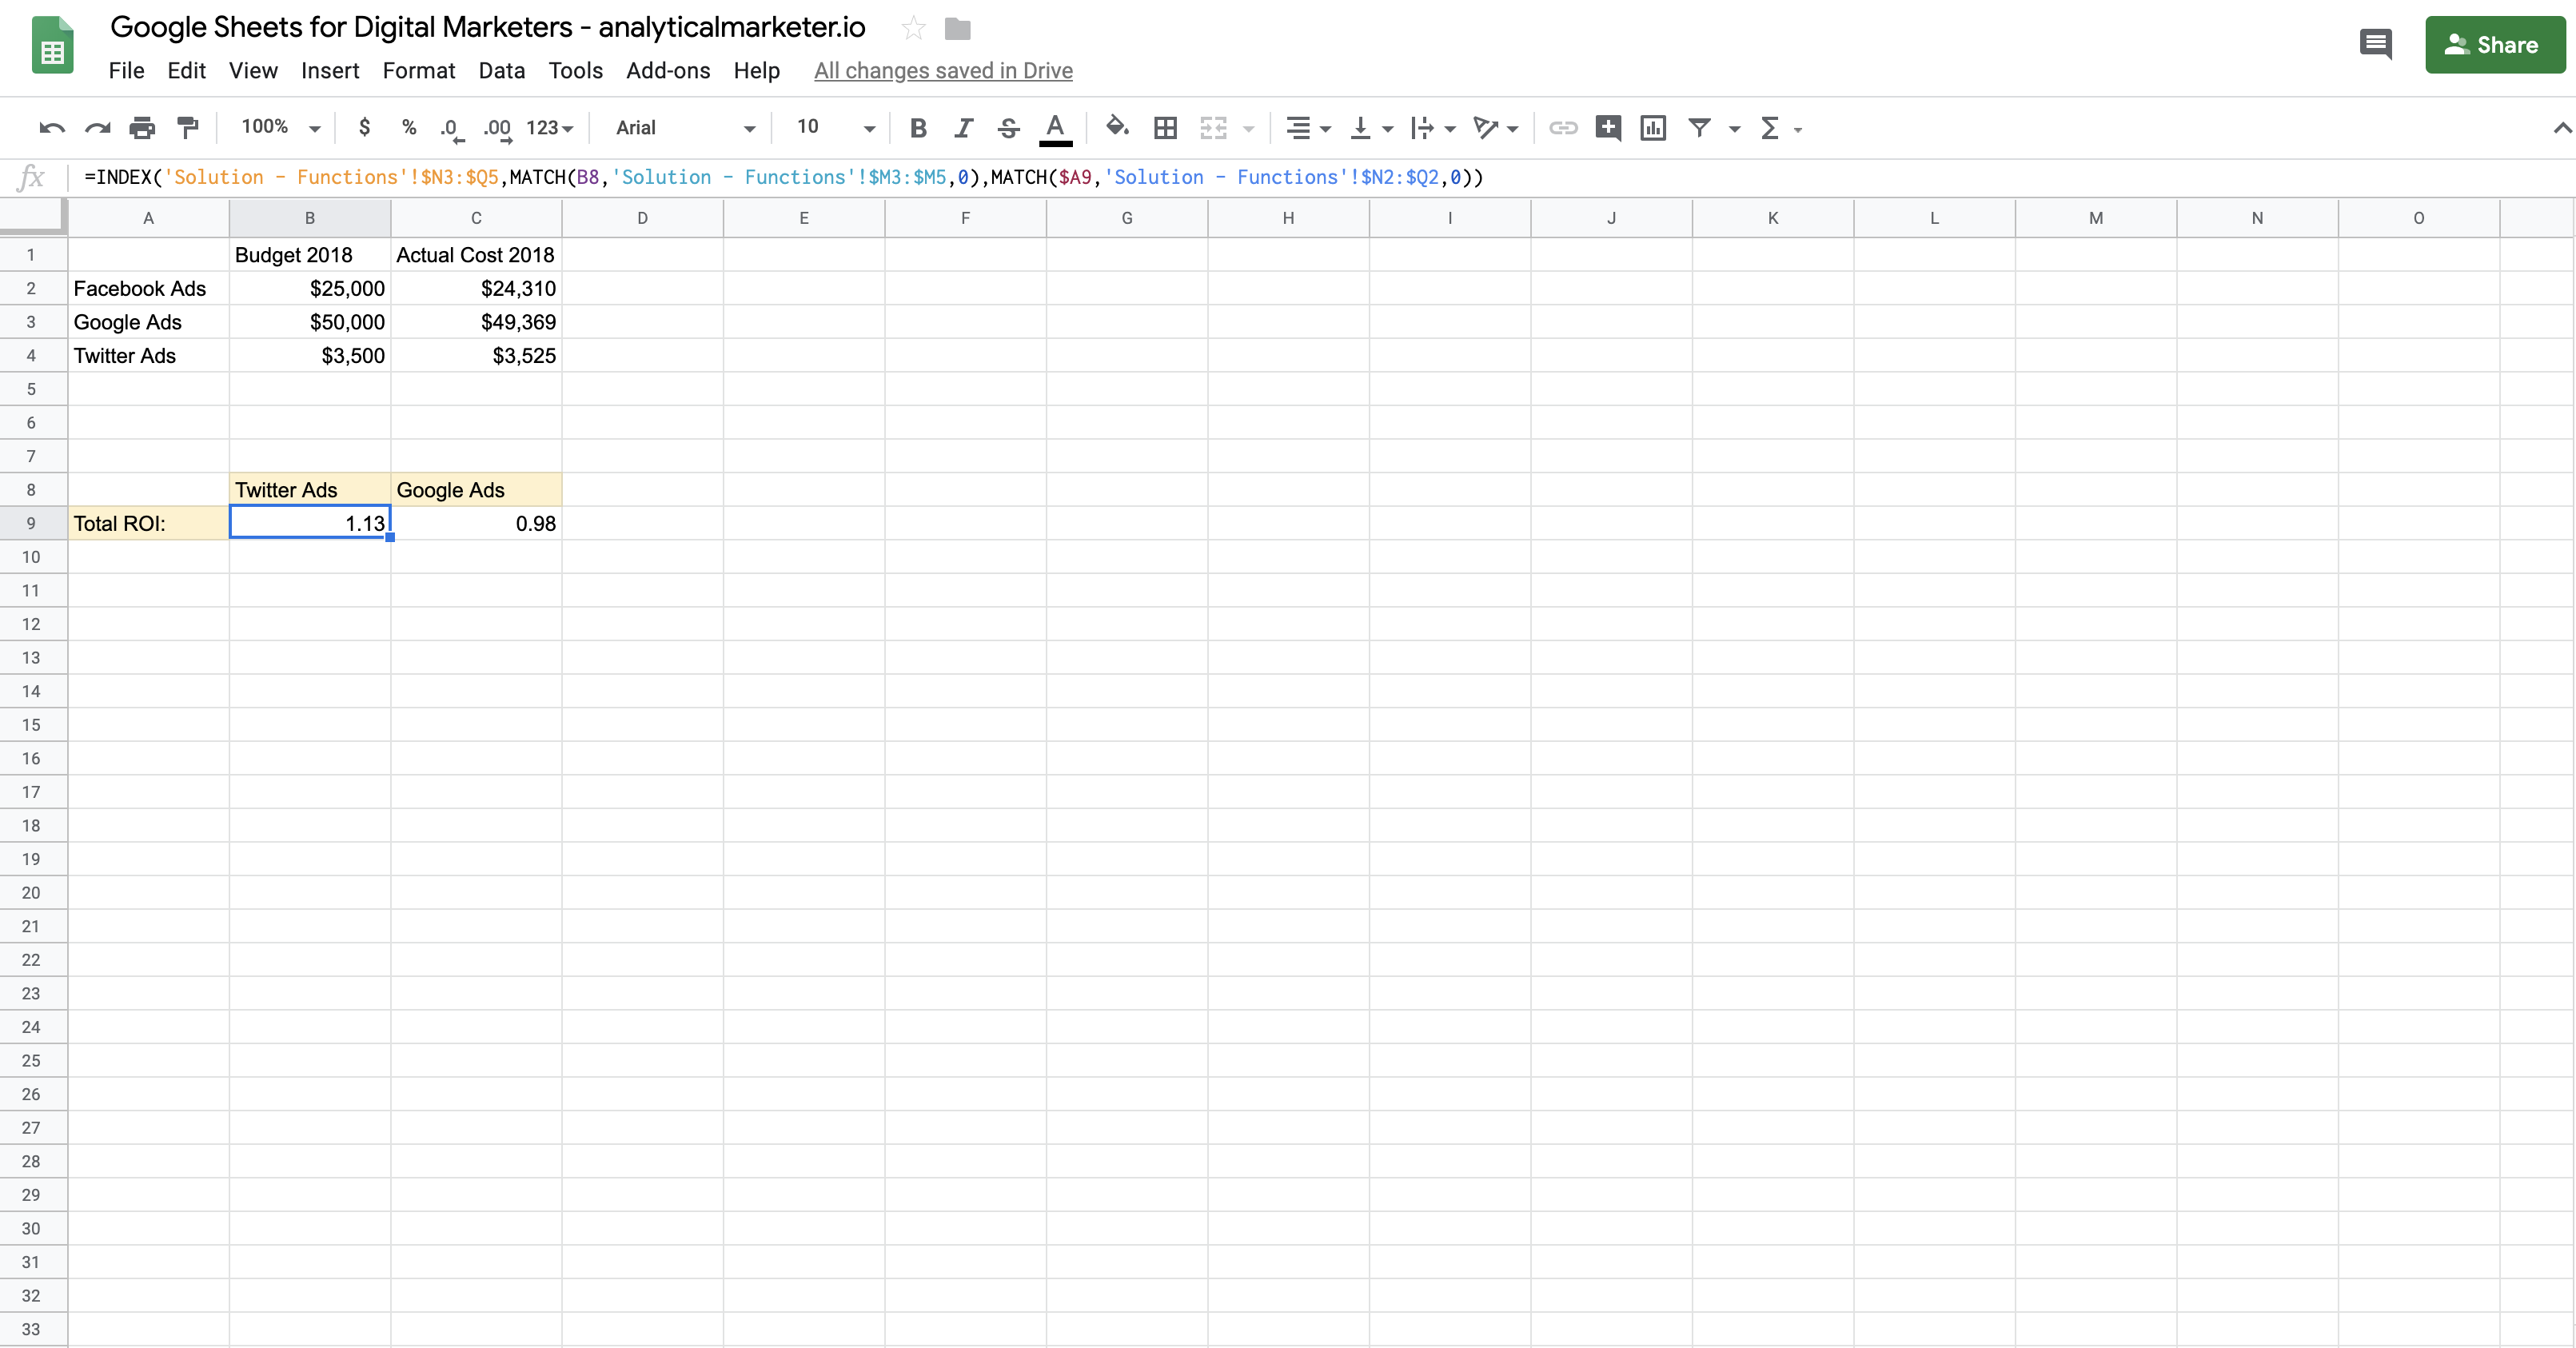 Google Sheets formulas for marketing - INDEXMATCH